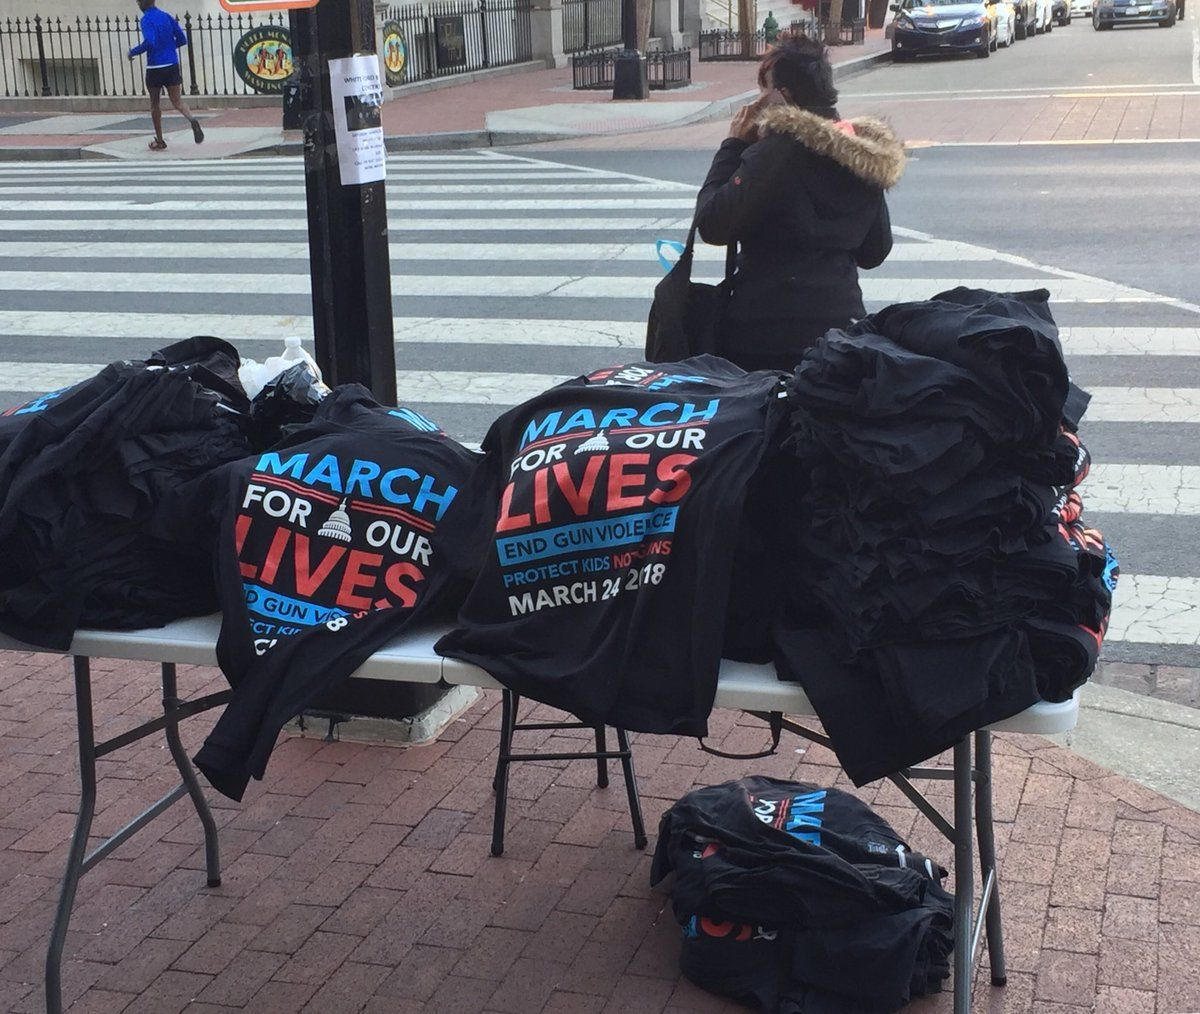 T-shirts on sale at March For Our Lives rally. (WTOP/John Domen)